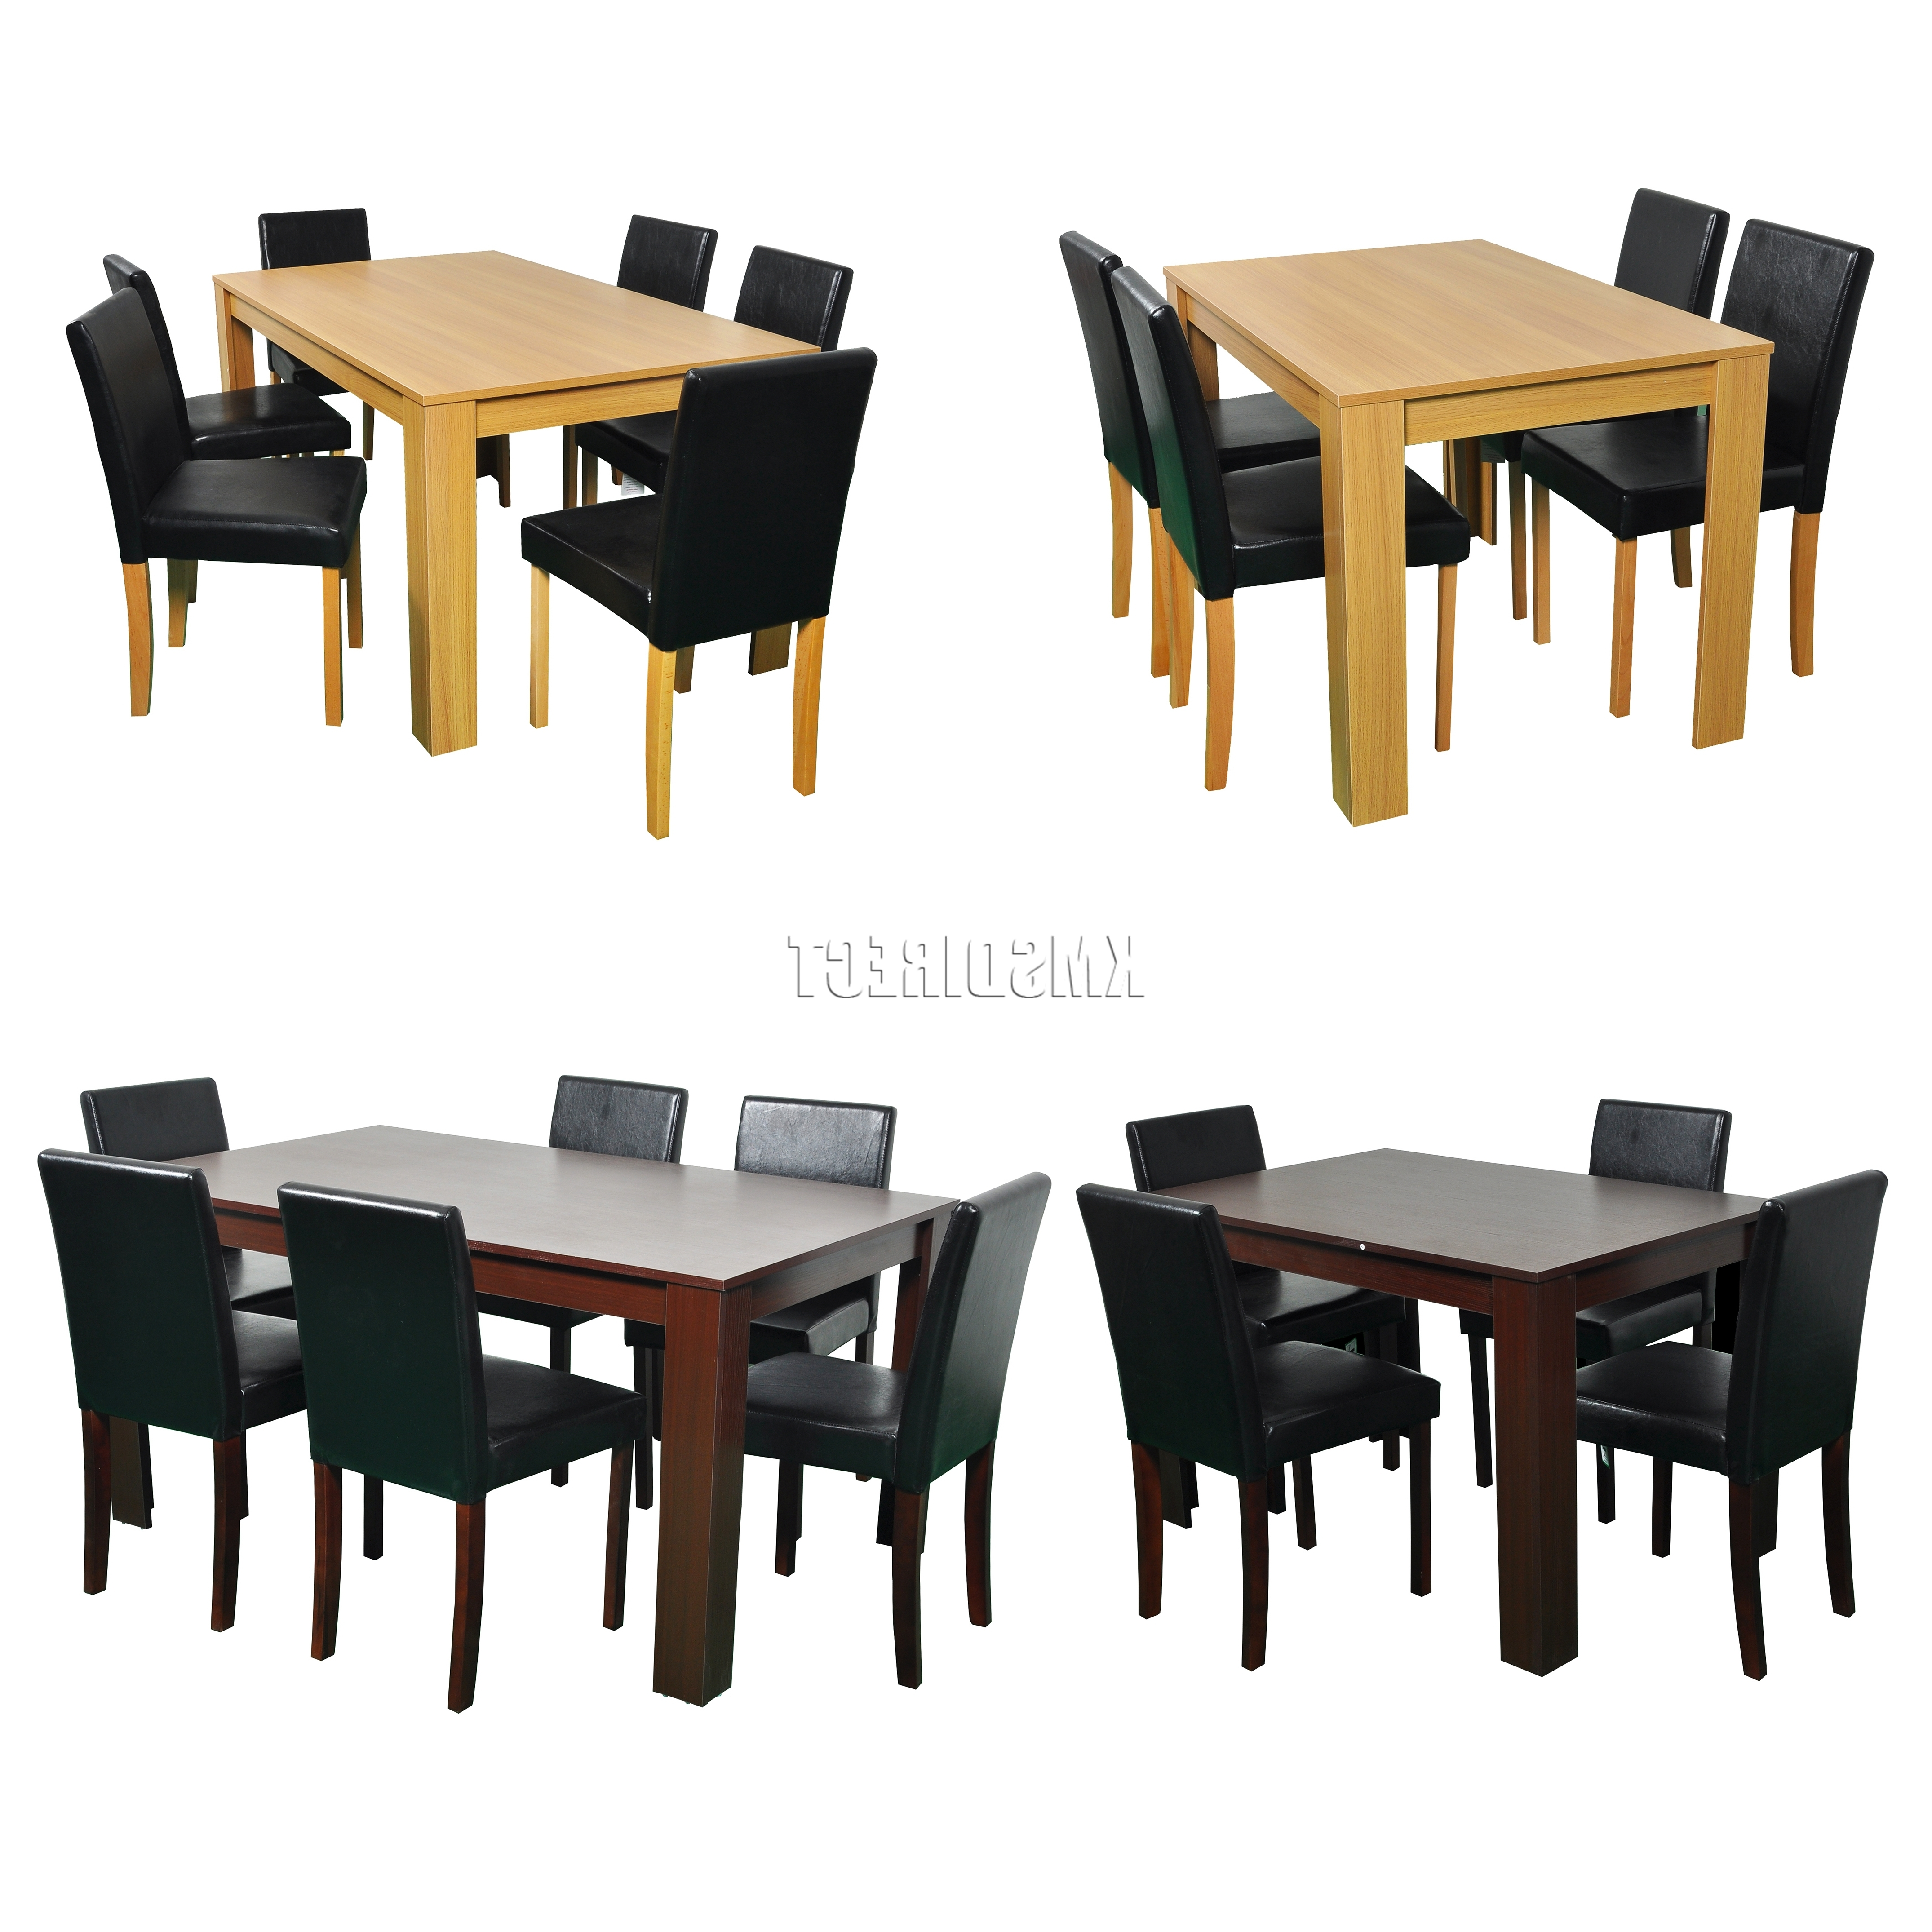 Famous Westwood Wooden Dining Table And 4 Or 6 Pu Faux Leather Chairs Set Regarding Wooden Dining Sets (View 8 of 25)